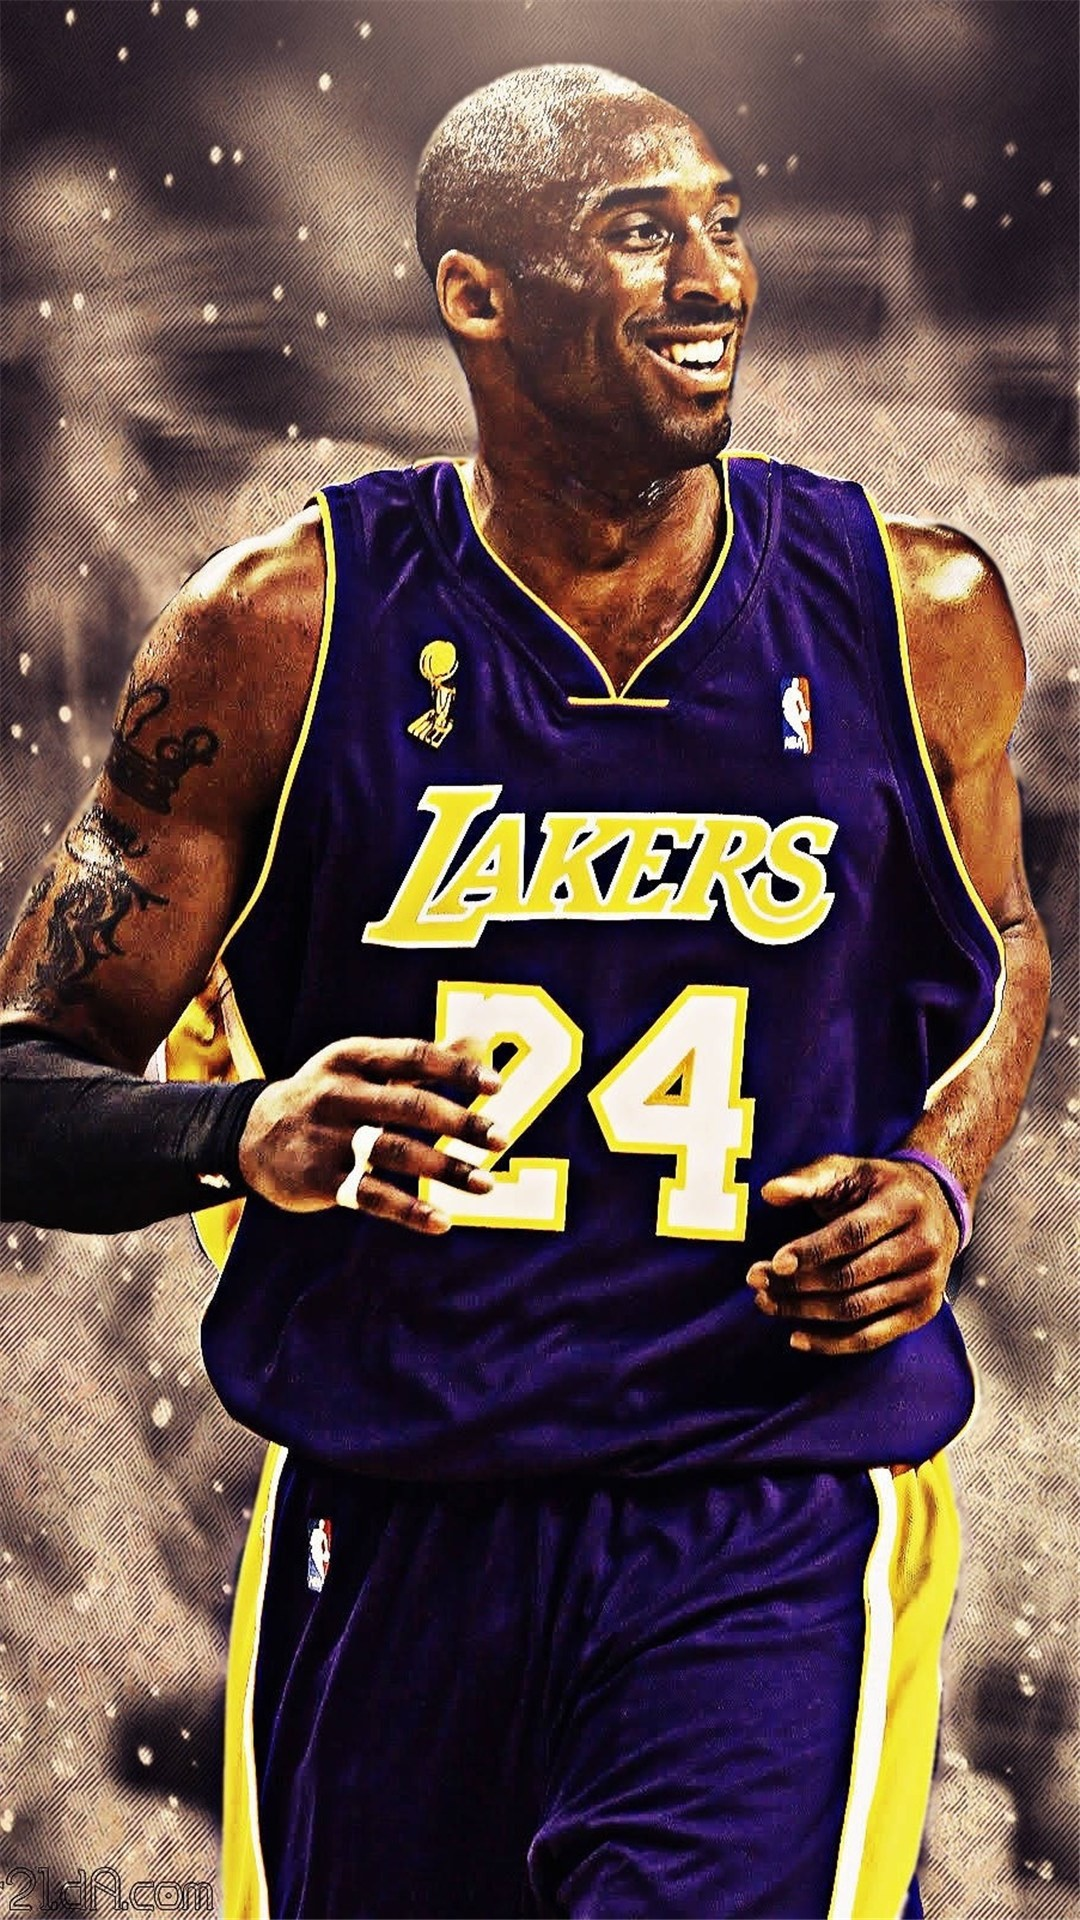 Lakers Championship Wallpaper (76+ images)